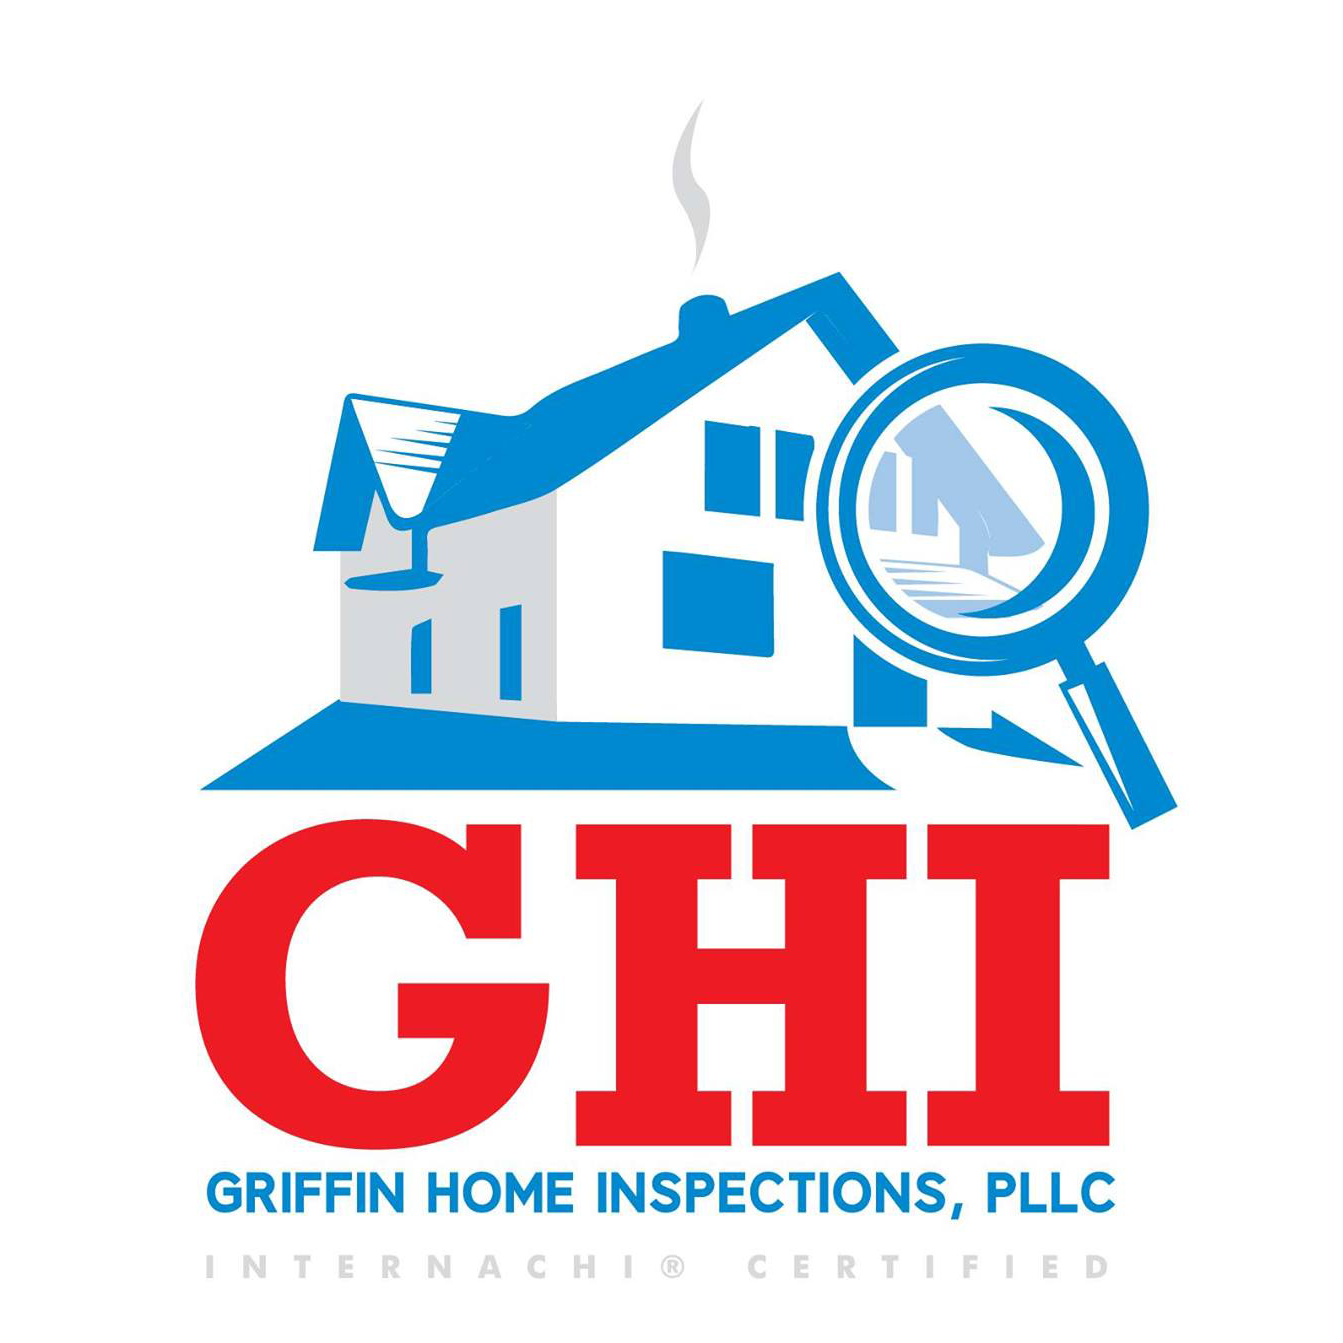 Griffin Home Inspections